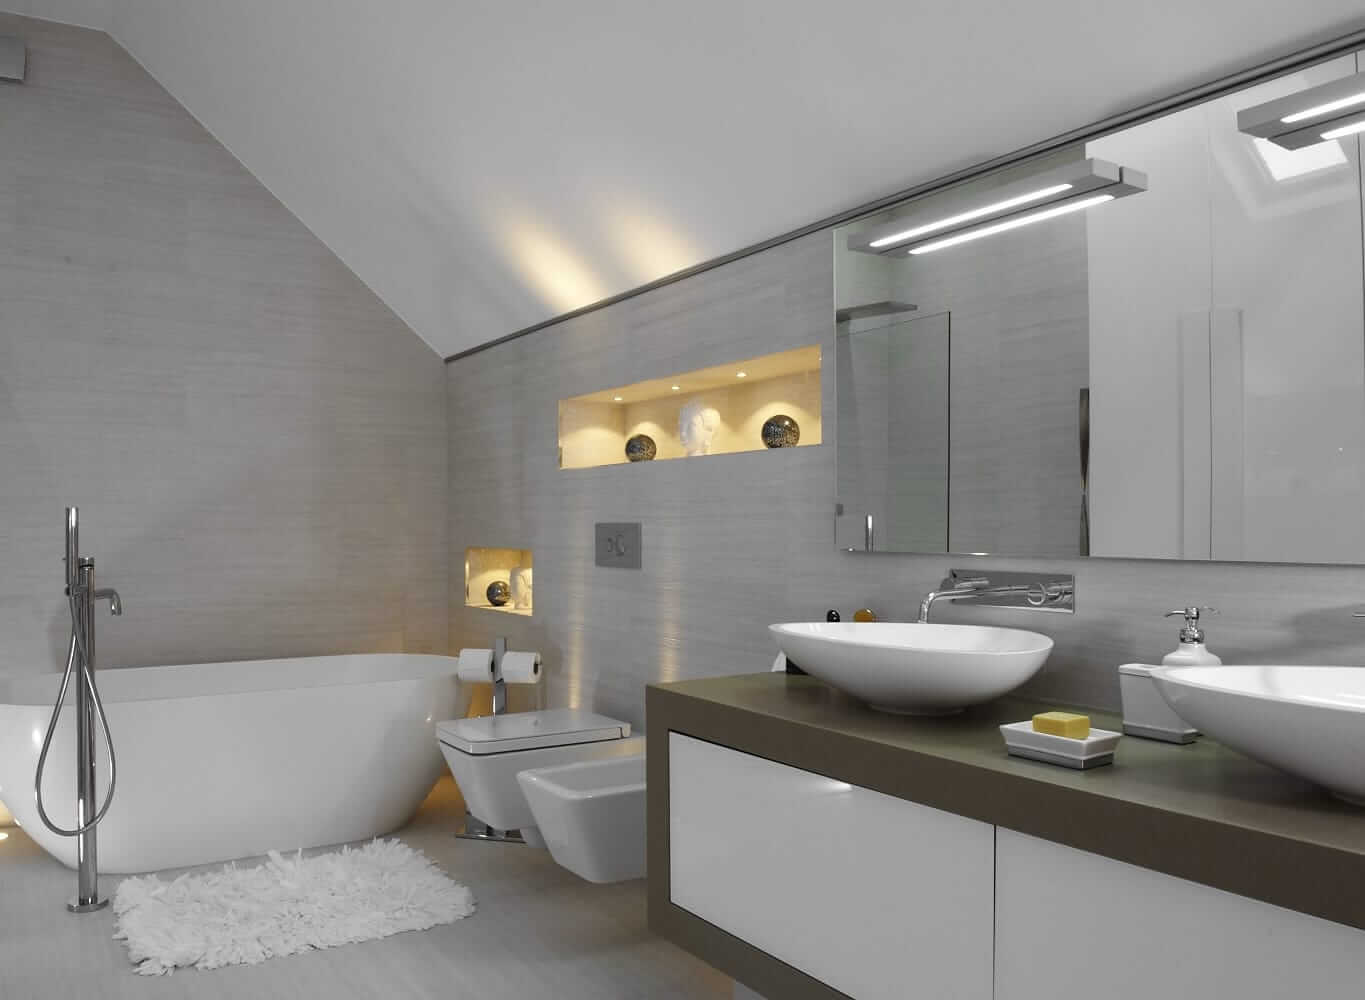 bathroom with a toilet and sinks